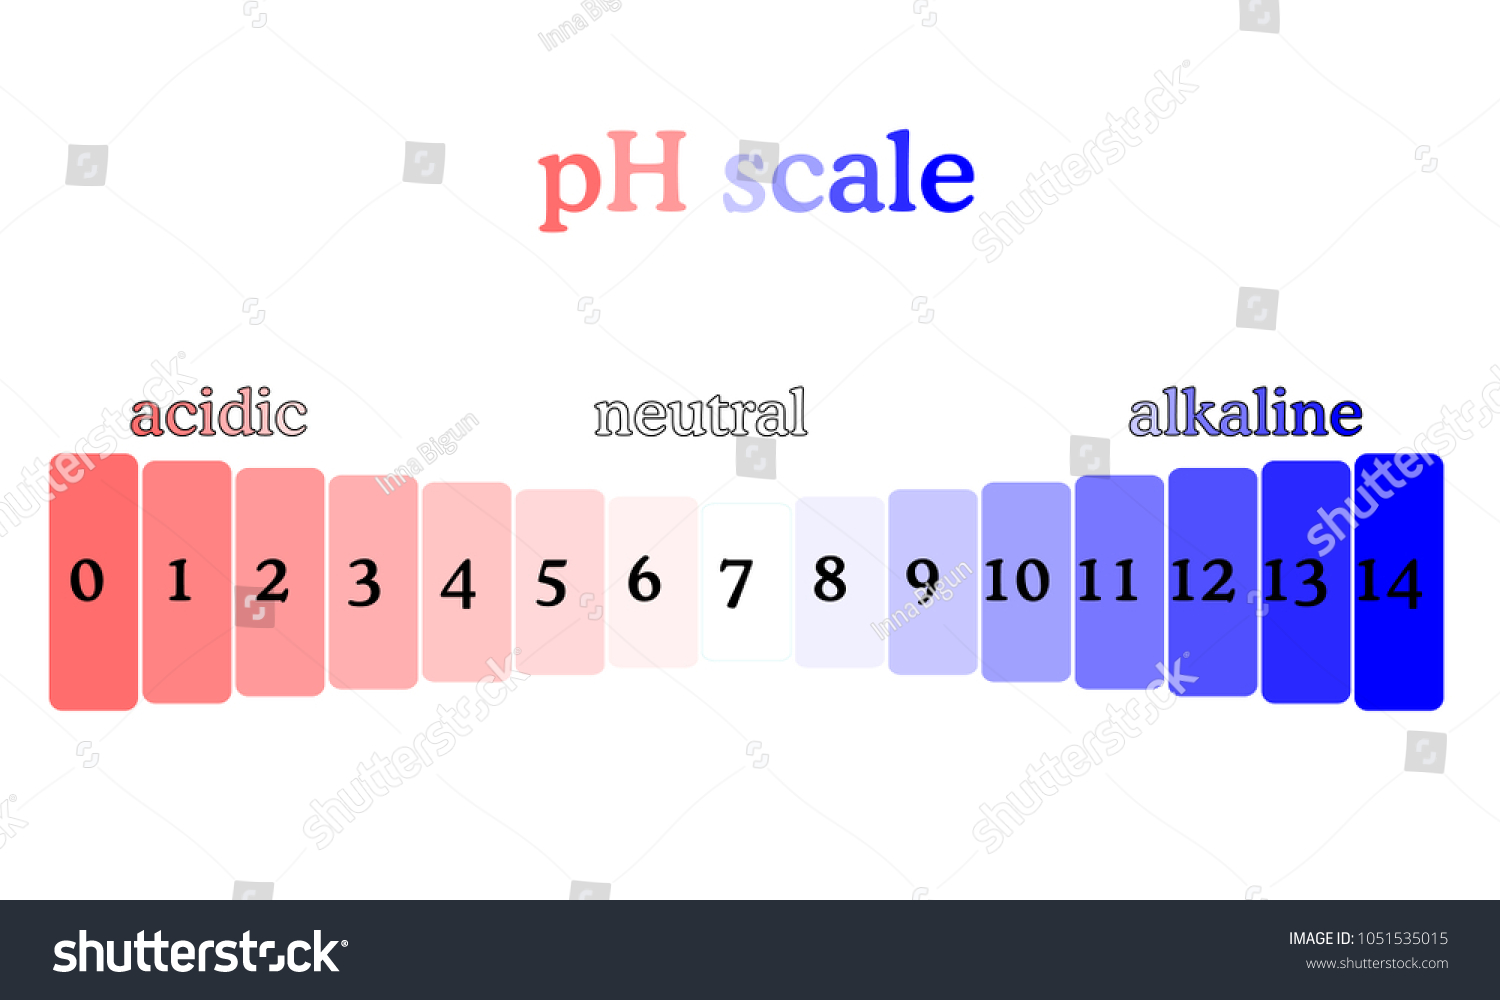 hight resolution of ph scale diagram with corresponding acidic or alcaline values litmus paper color chart colorful